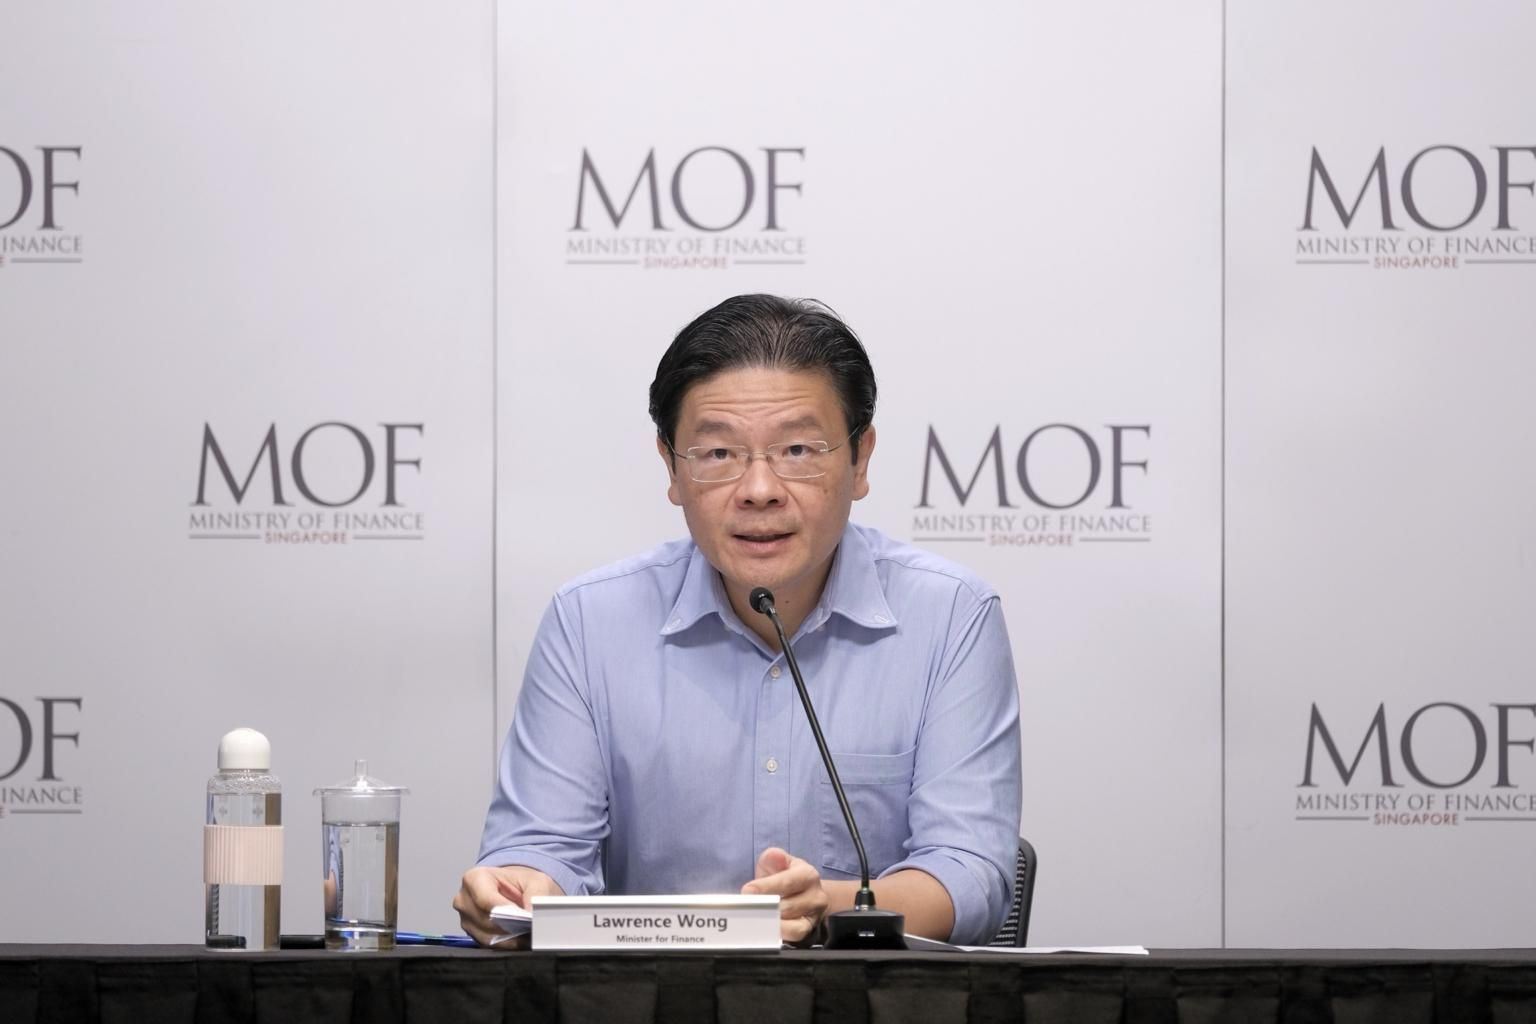 Finance Minister Lawrence Wong Appointed To Mas Board Ong Ye Kung To Step Down Government Economy The Business Times